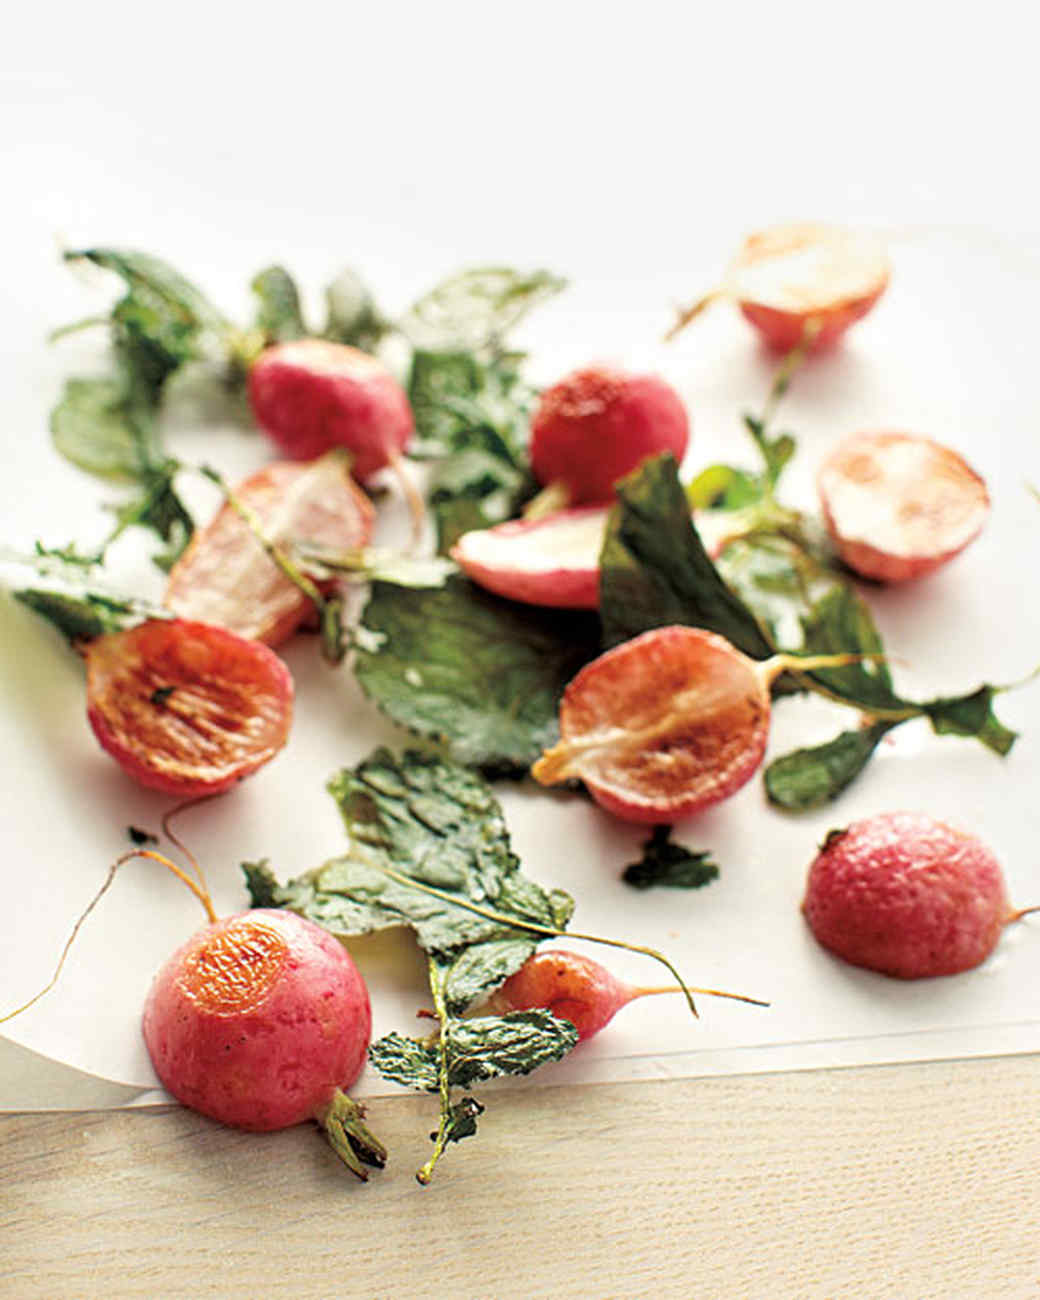 Roasted Radishes and Greens